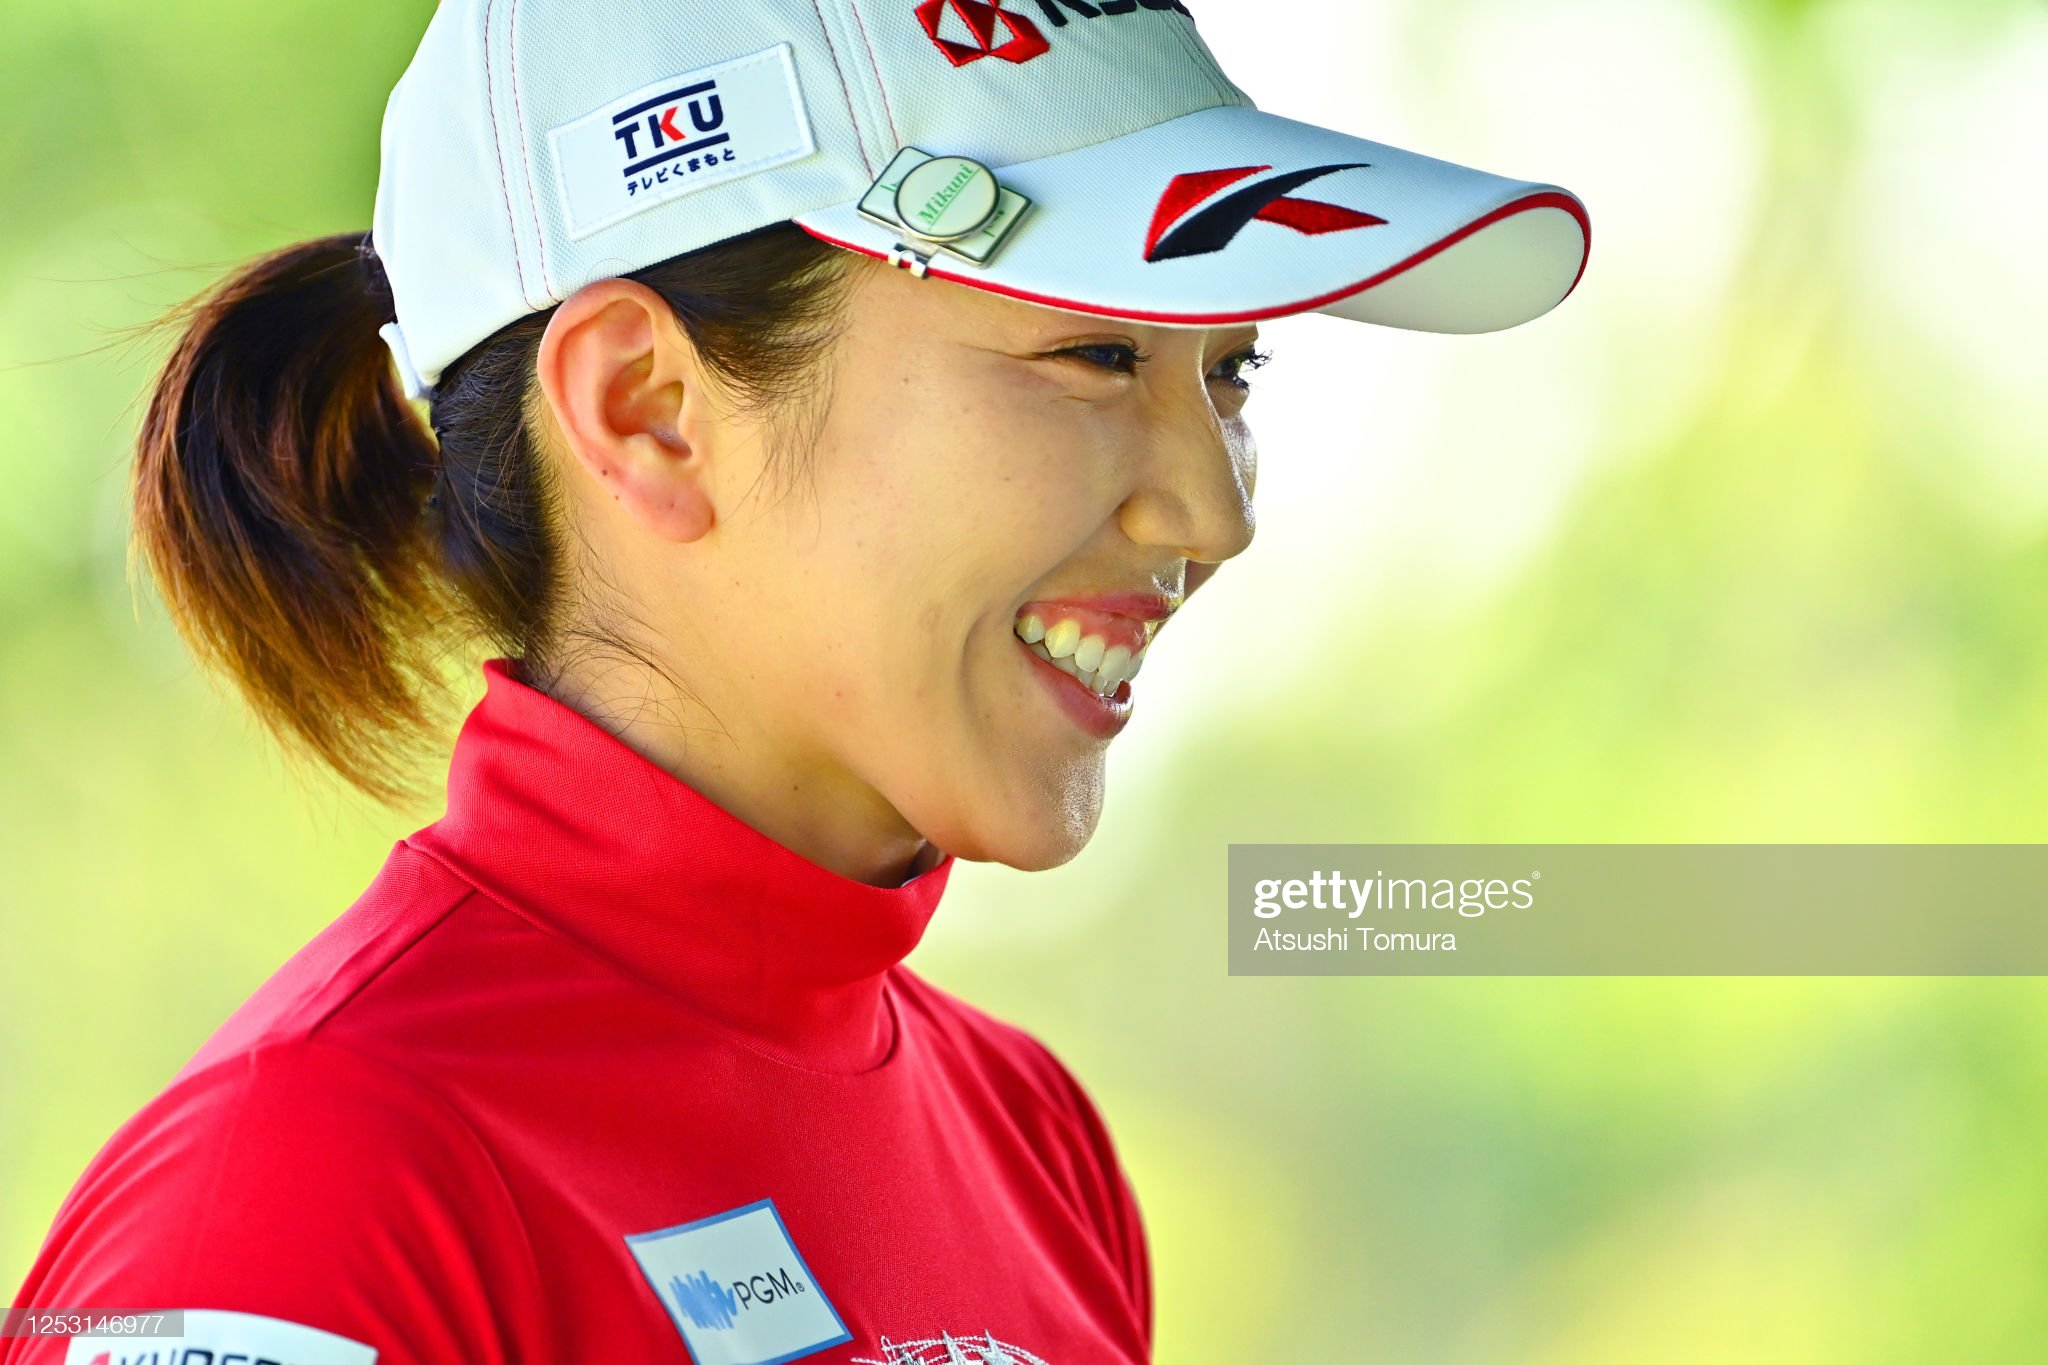 https://media.gettyimages.com/photos/ritsuko-ryu-of-japan-smiles-on-the-1st-tee-during-the-final-round-of-picture-id1253146977?s=2048x2048